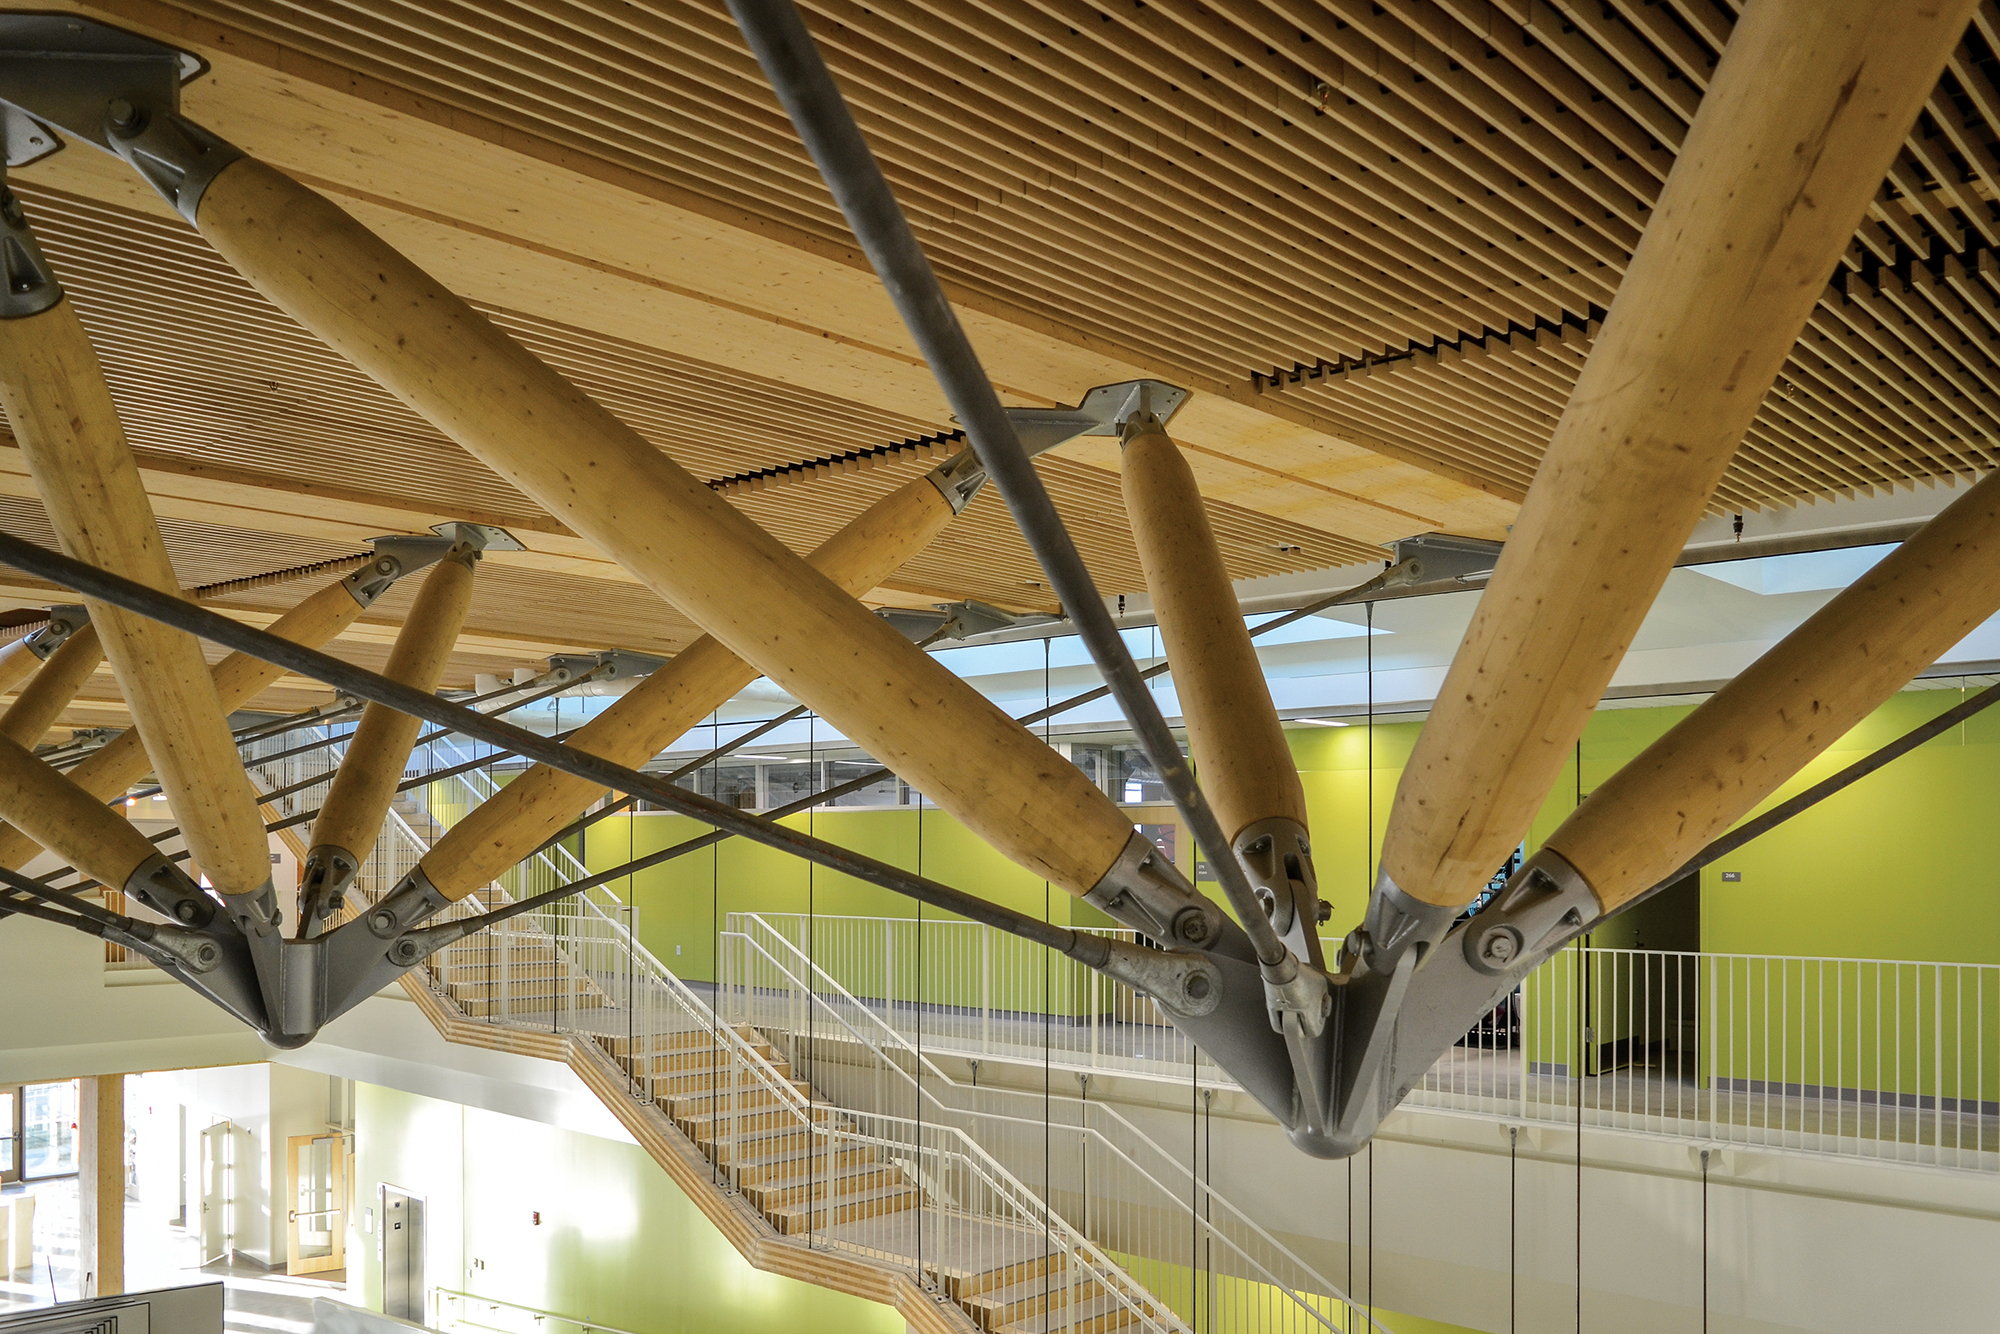 Home Studio Design Associates Umass Amherst Design Building Zipper Trusses Architect